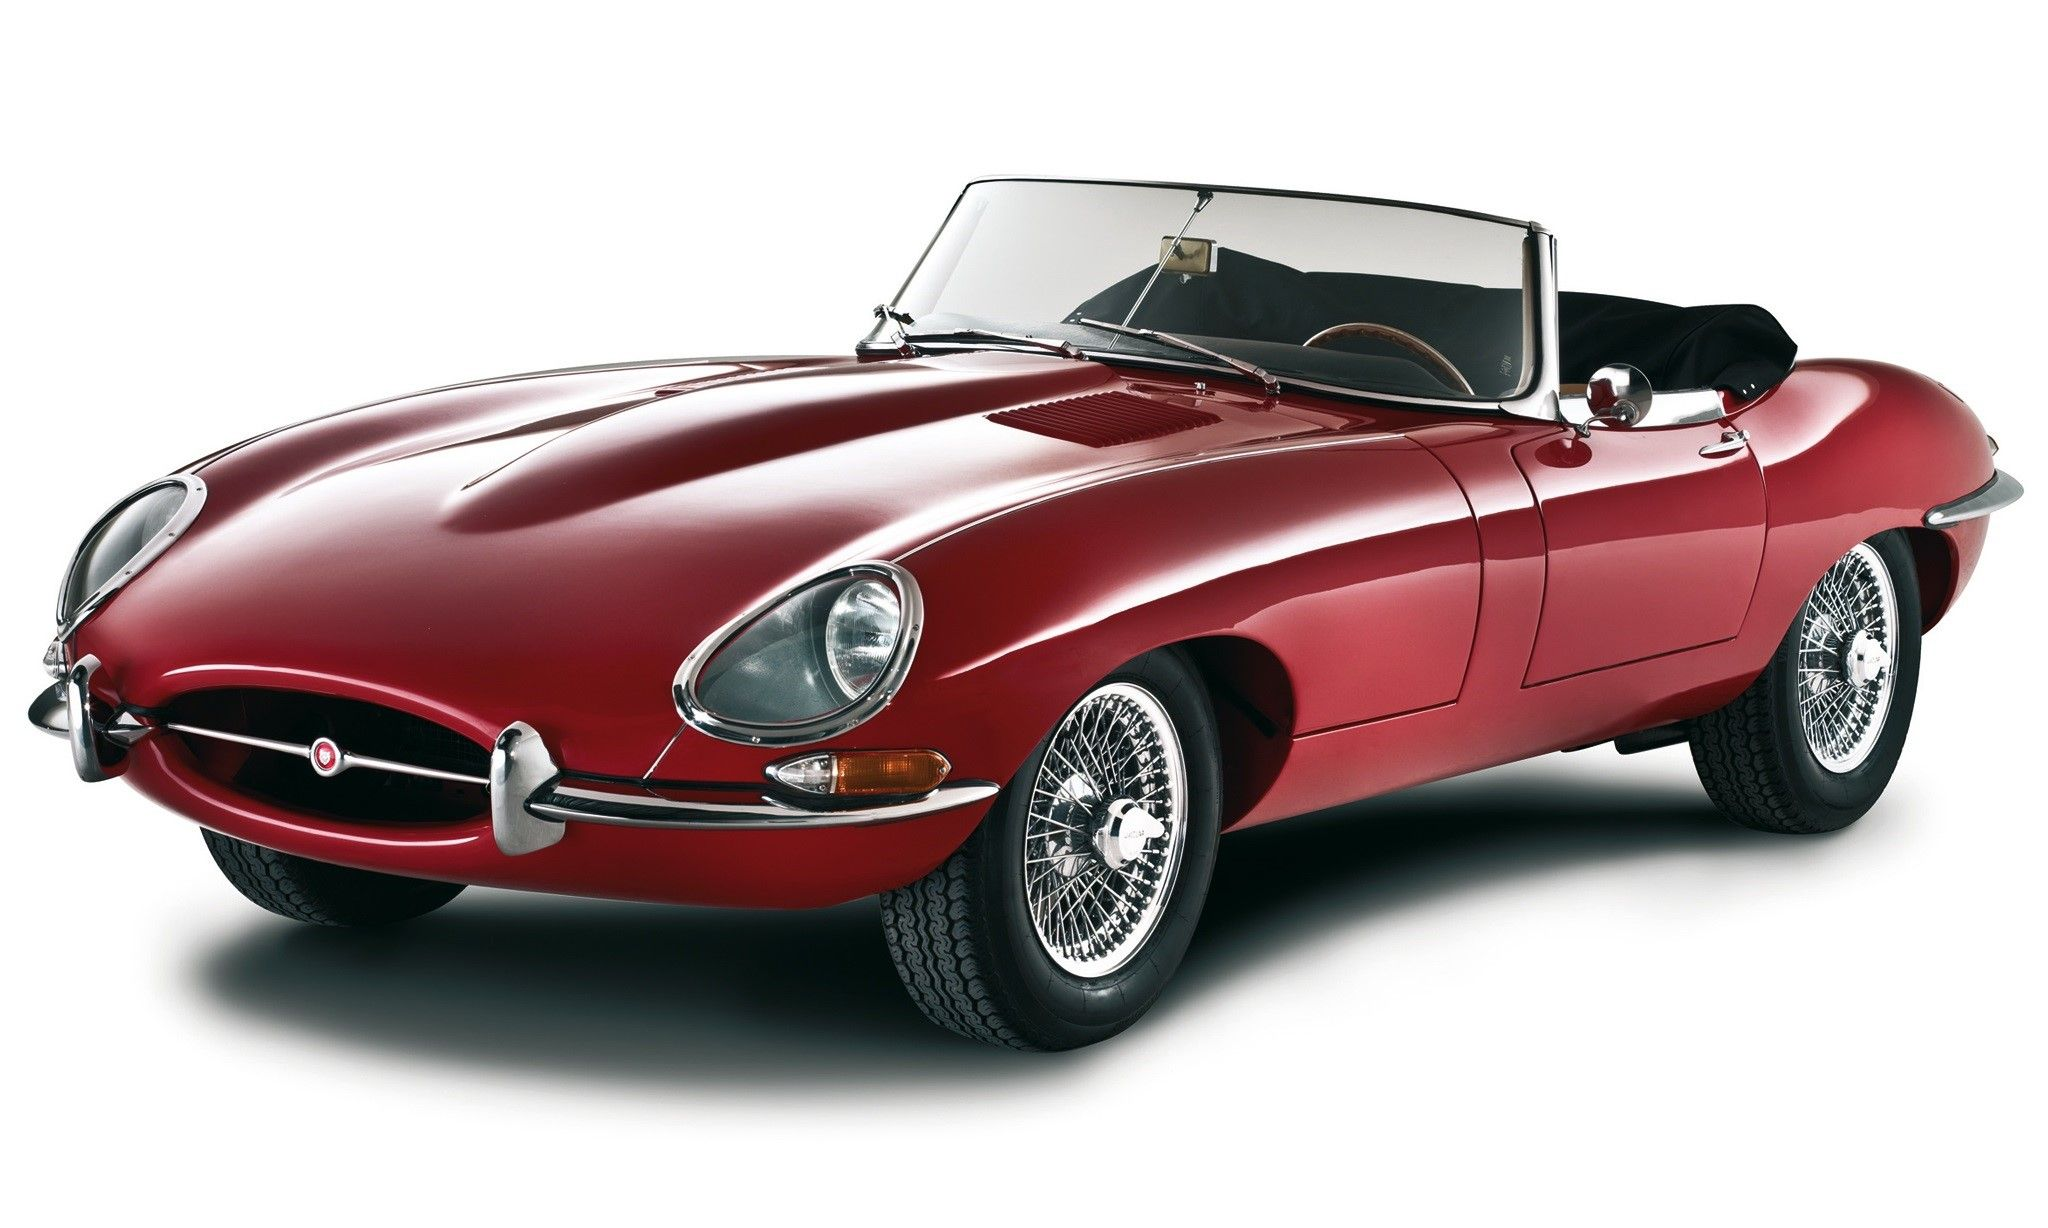 The 10 Best Classic Sports Cars Of The 1960s (1) The Classic 1962 Ferrari